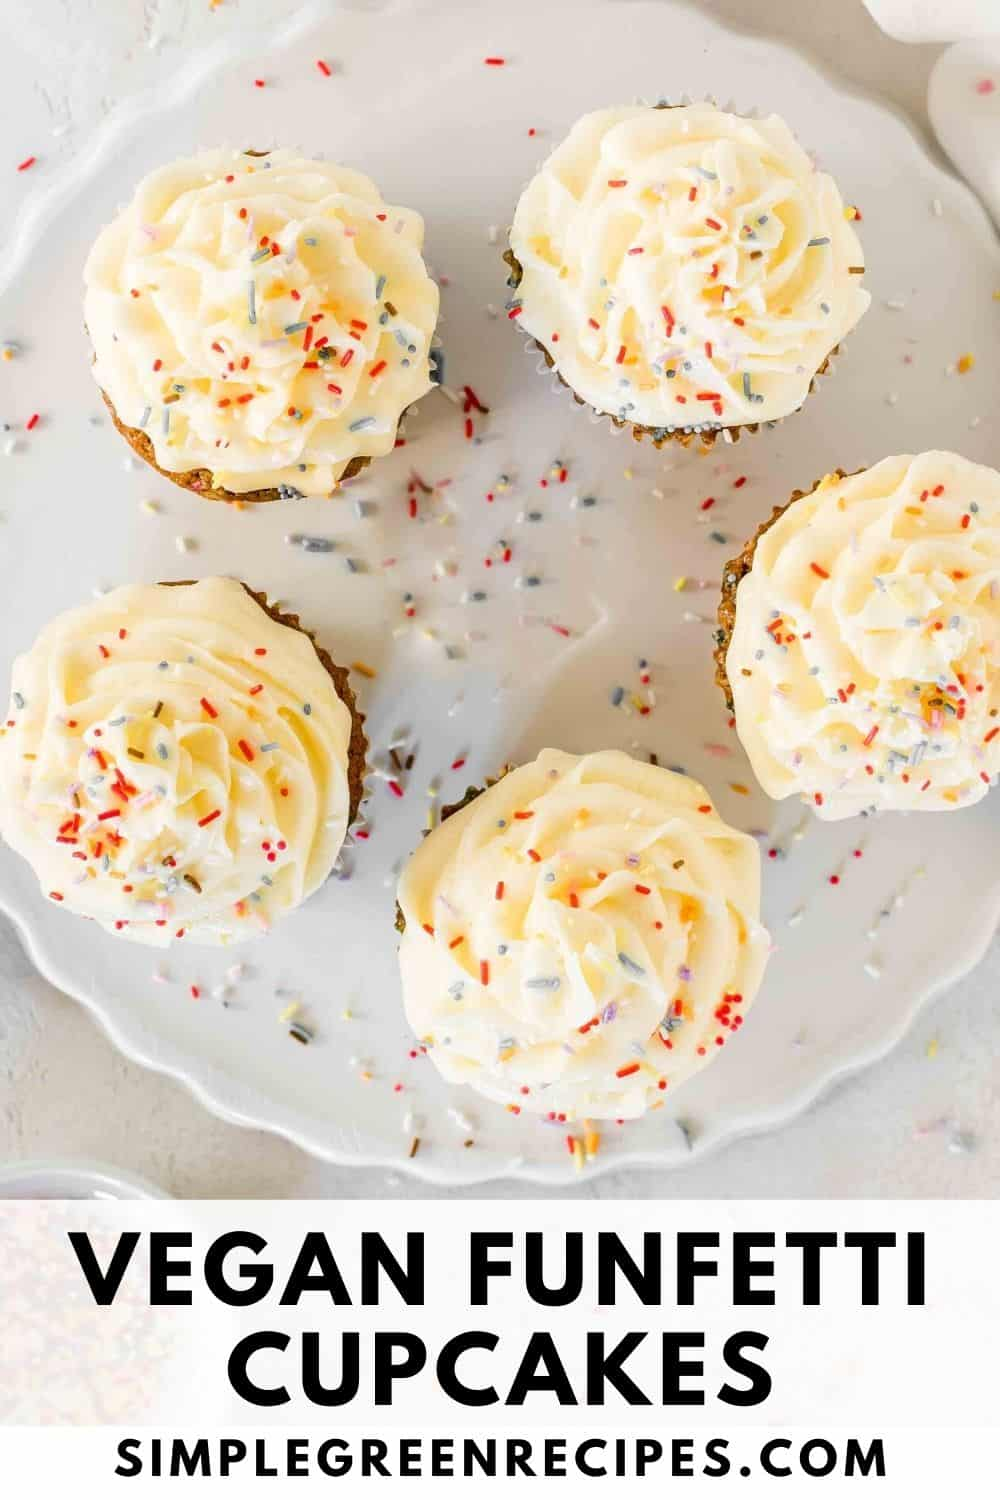 Cupcakes frosted with vanilla buttercream and topped with colourful sprinkles on a white ceramic base